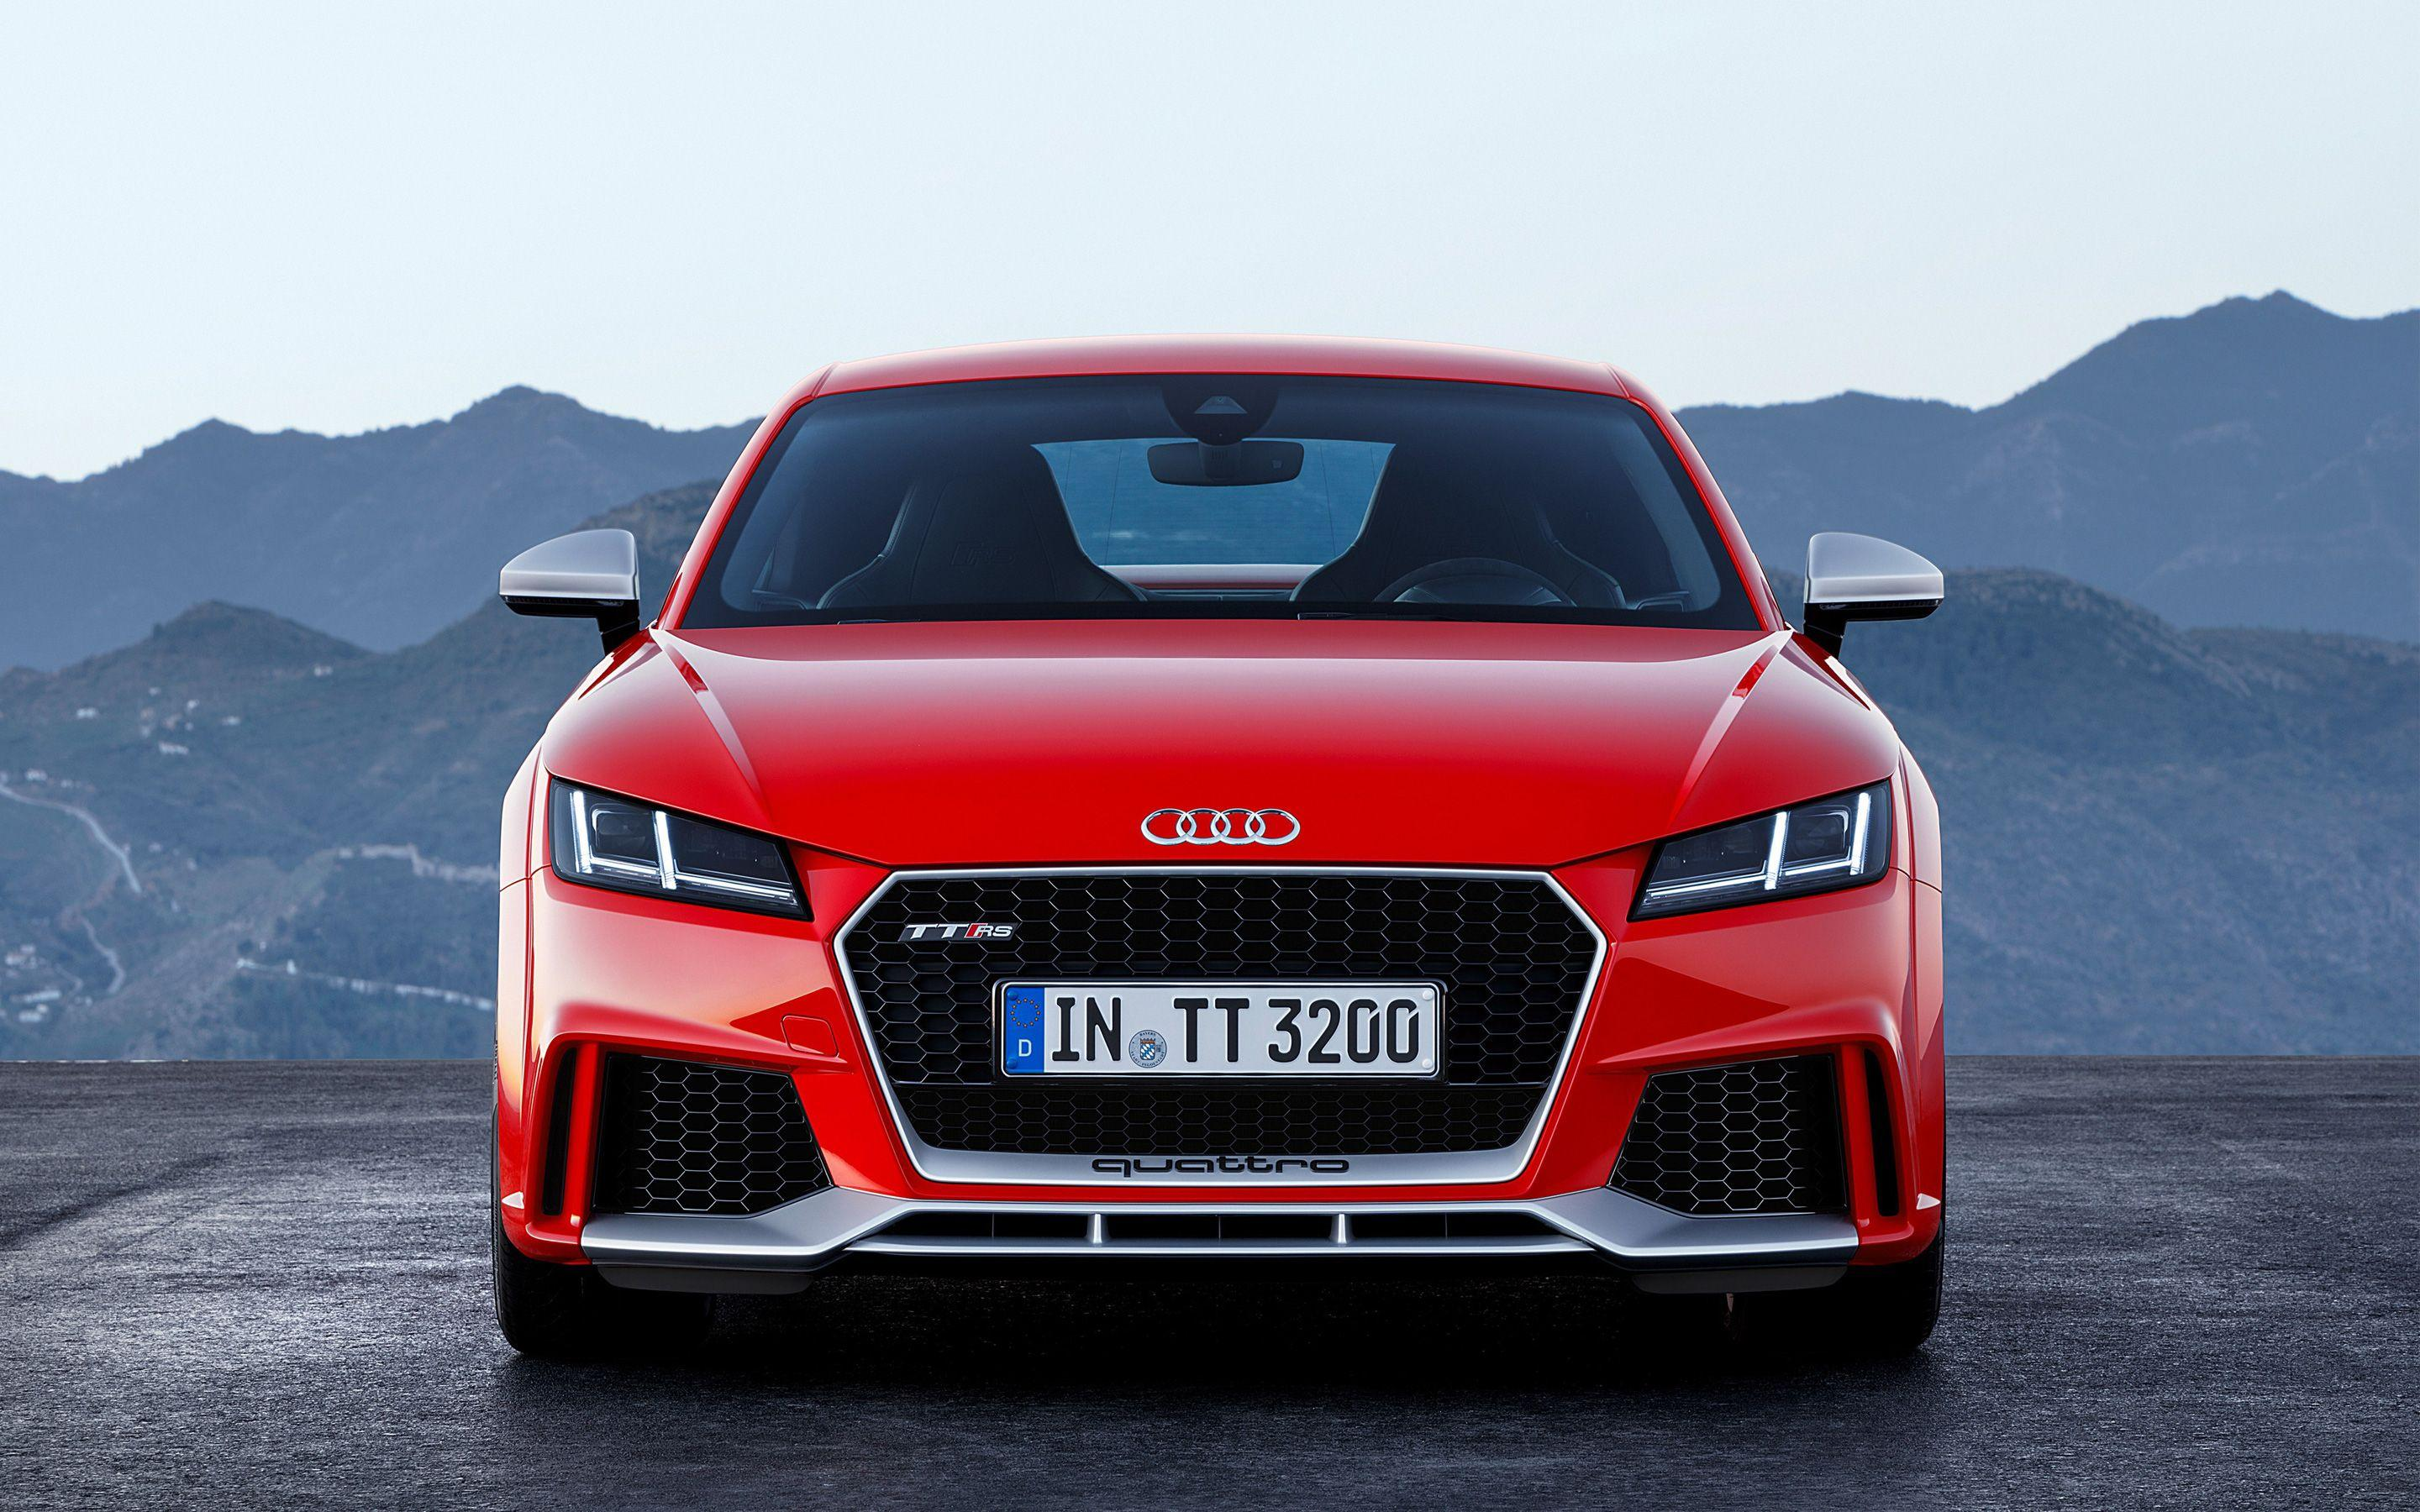 2017 Audi TT RS Coupe Wallpaper | HD Car Wallpapers